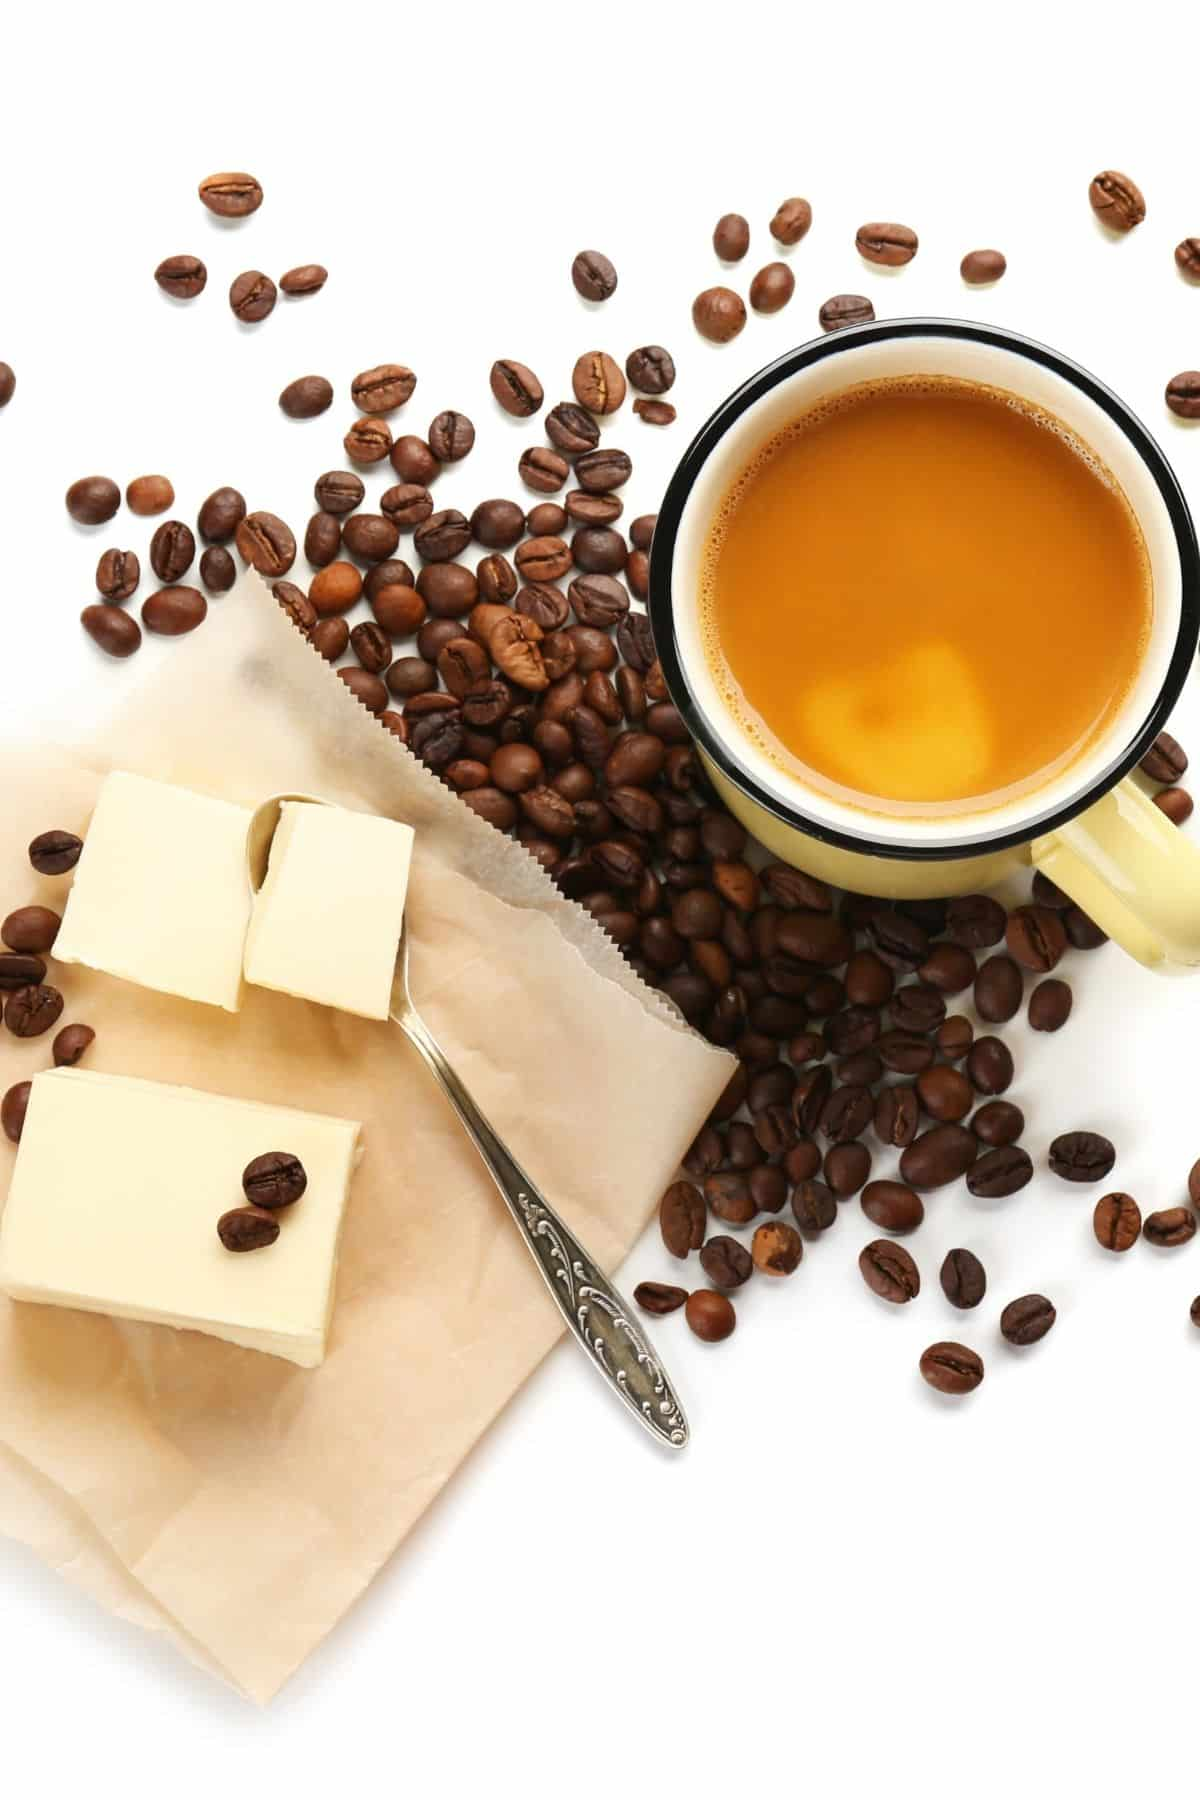 ingredients for butter coffee on a tabletop